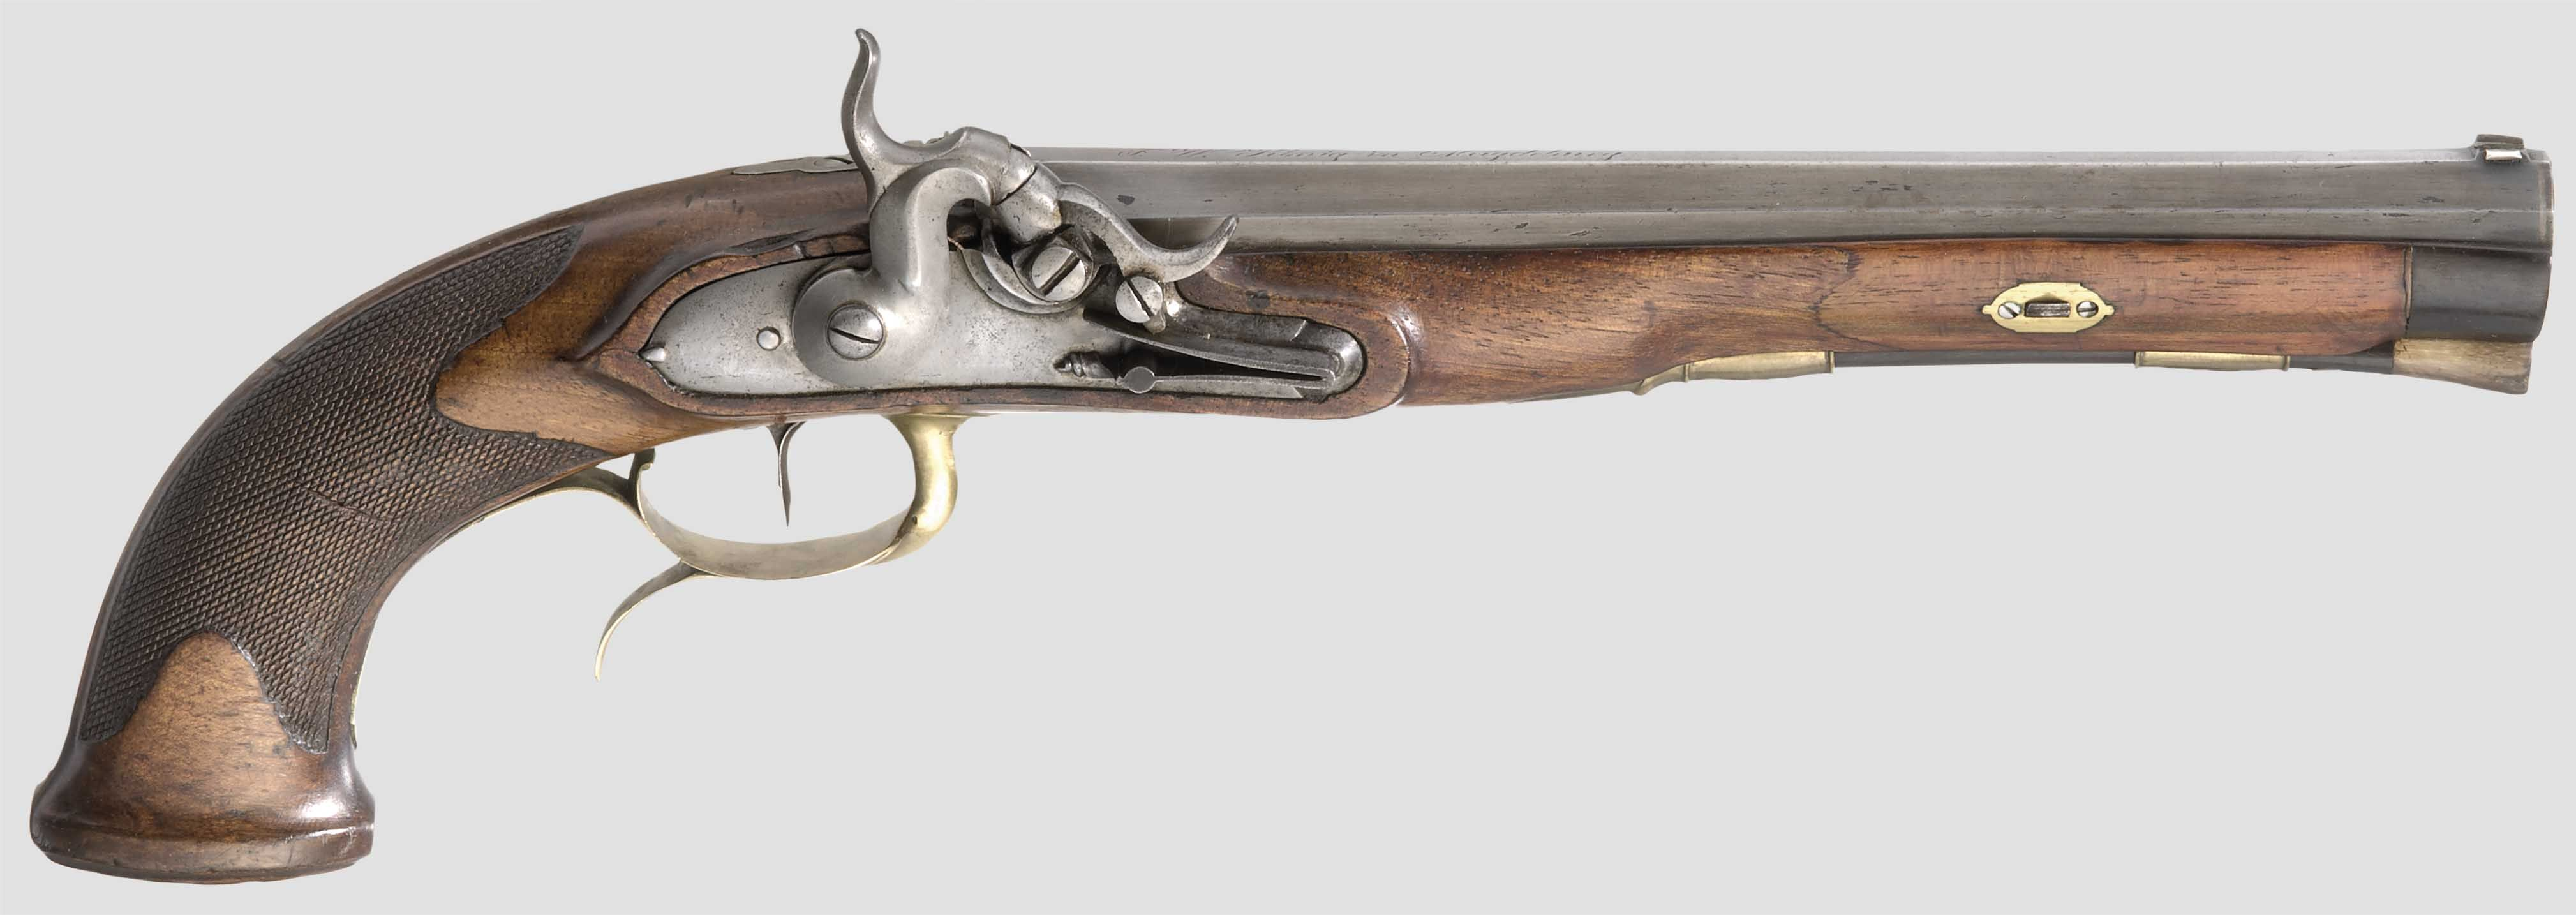 Pin Em Historical Weapons